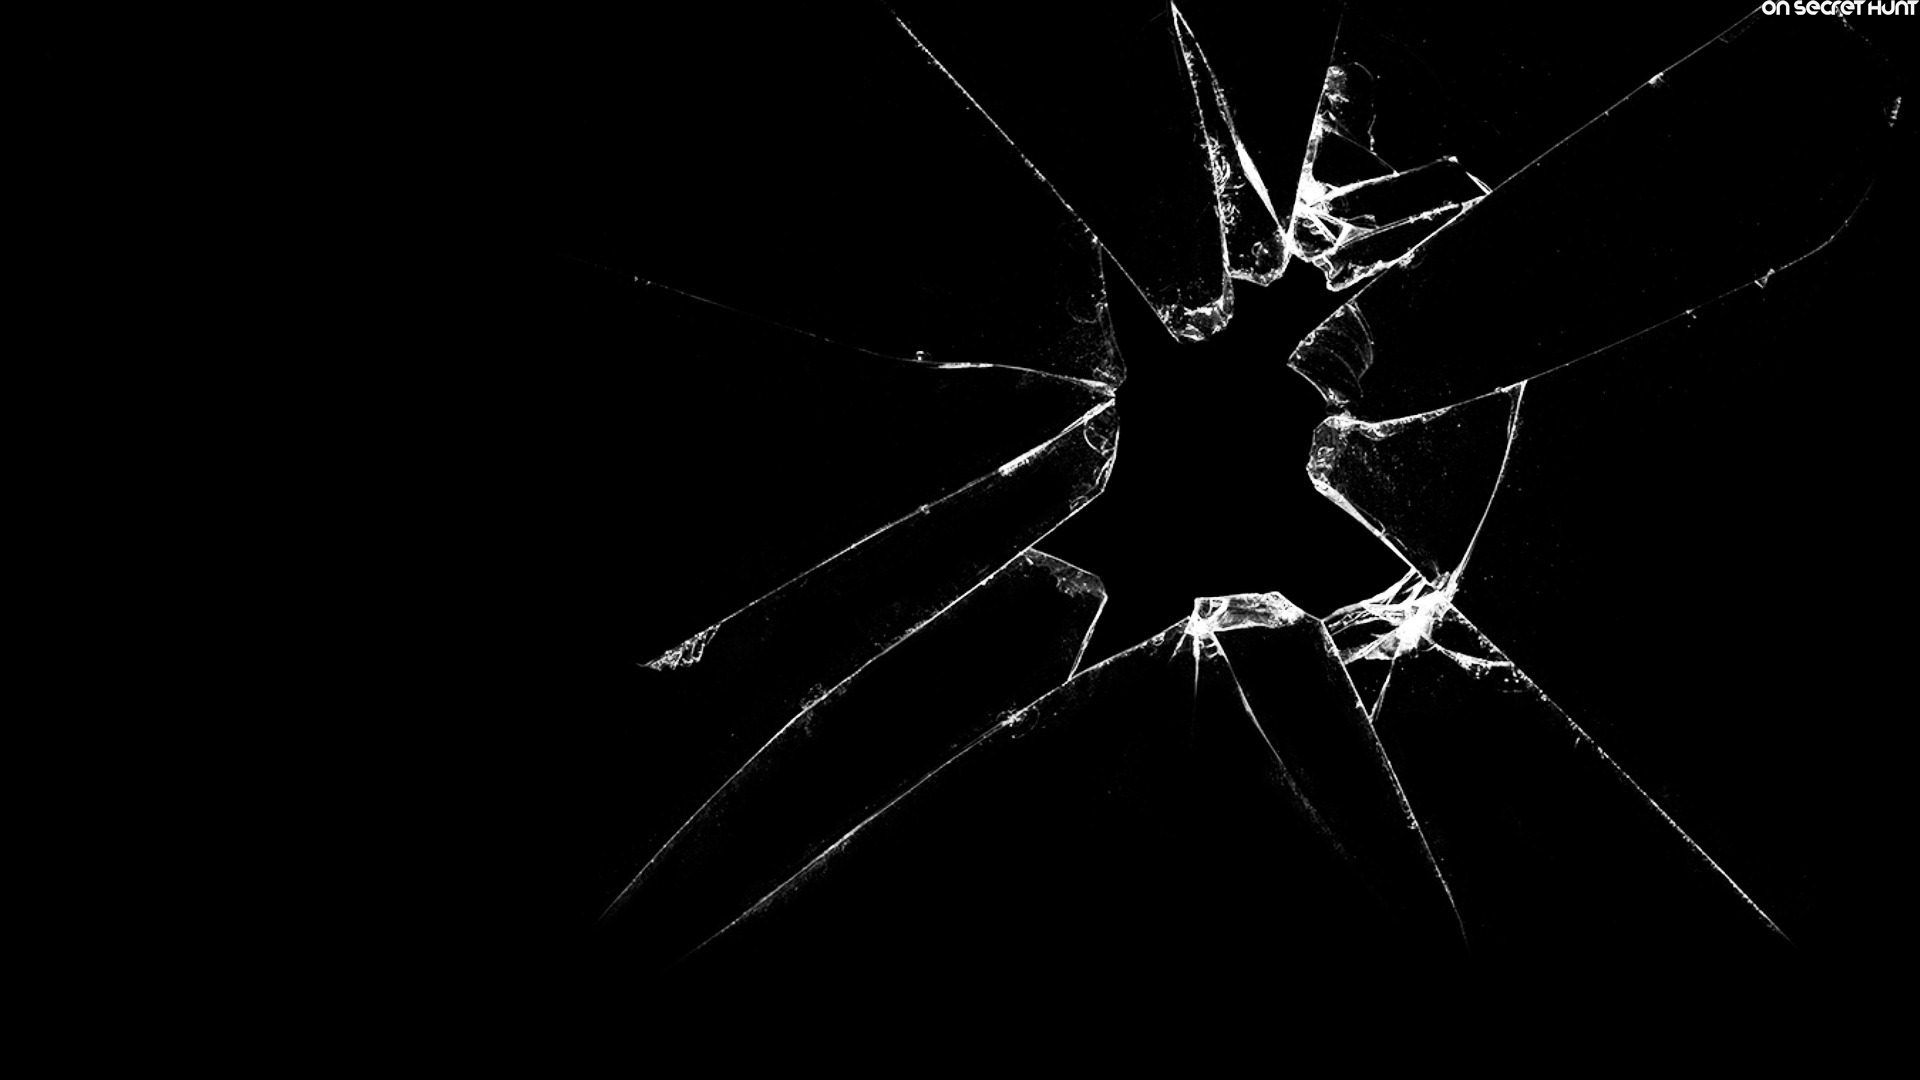 Cracked Screen Full HD Wallpaper And Background Image